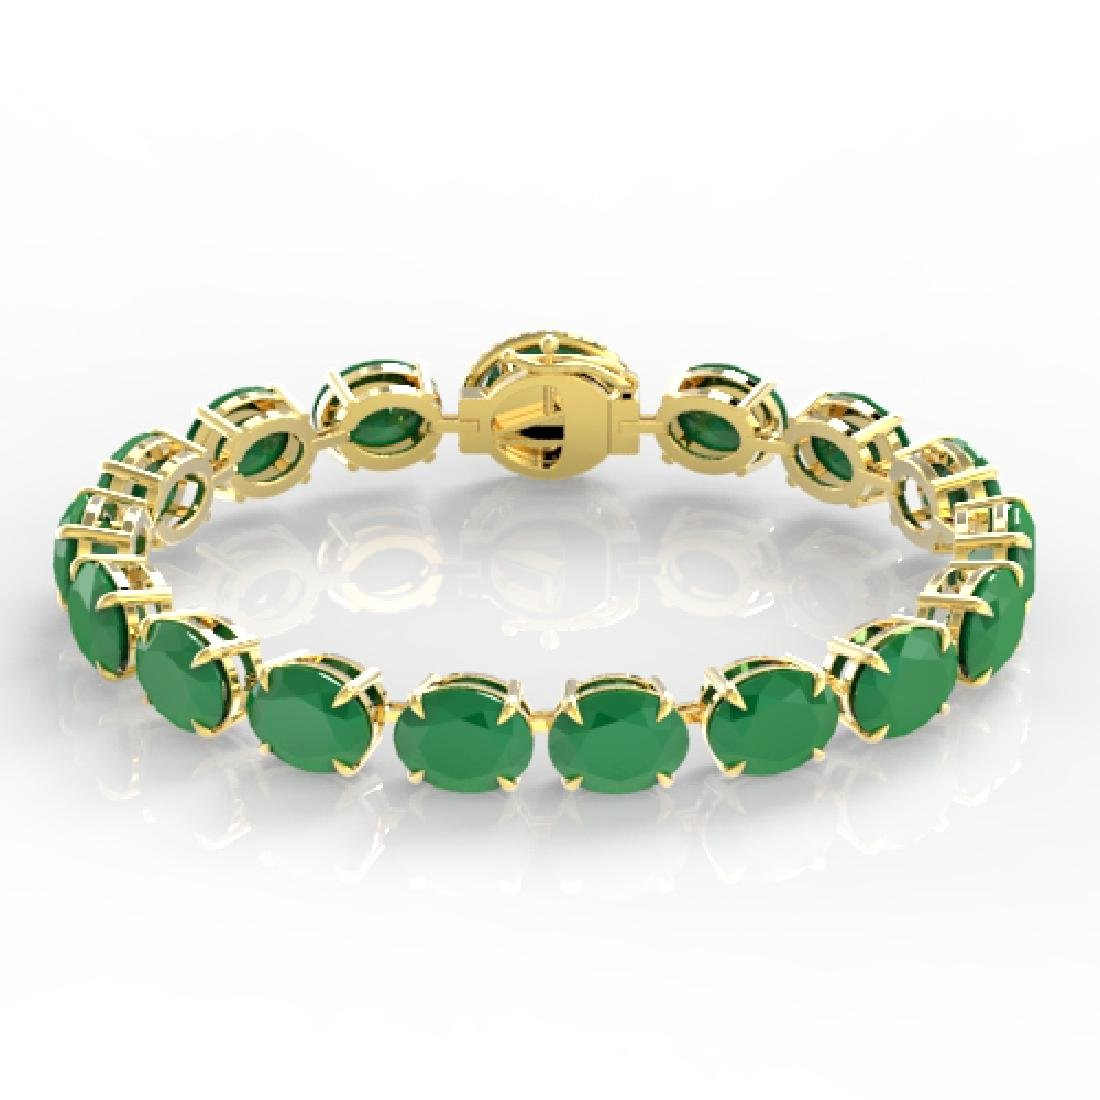 76 CTW Emerald & Micro Pave VS/SI Diamond Halo Bracelet - 2